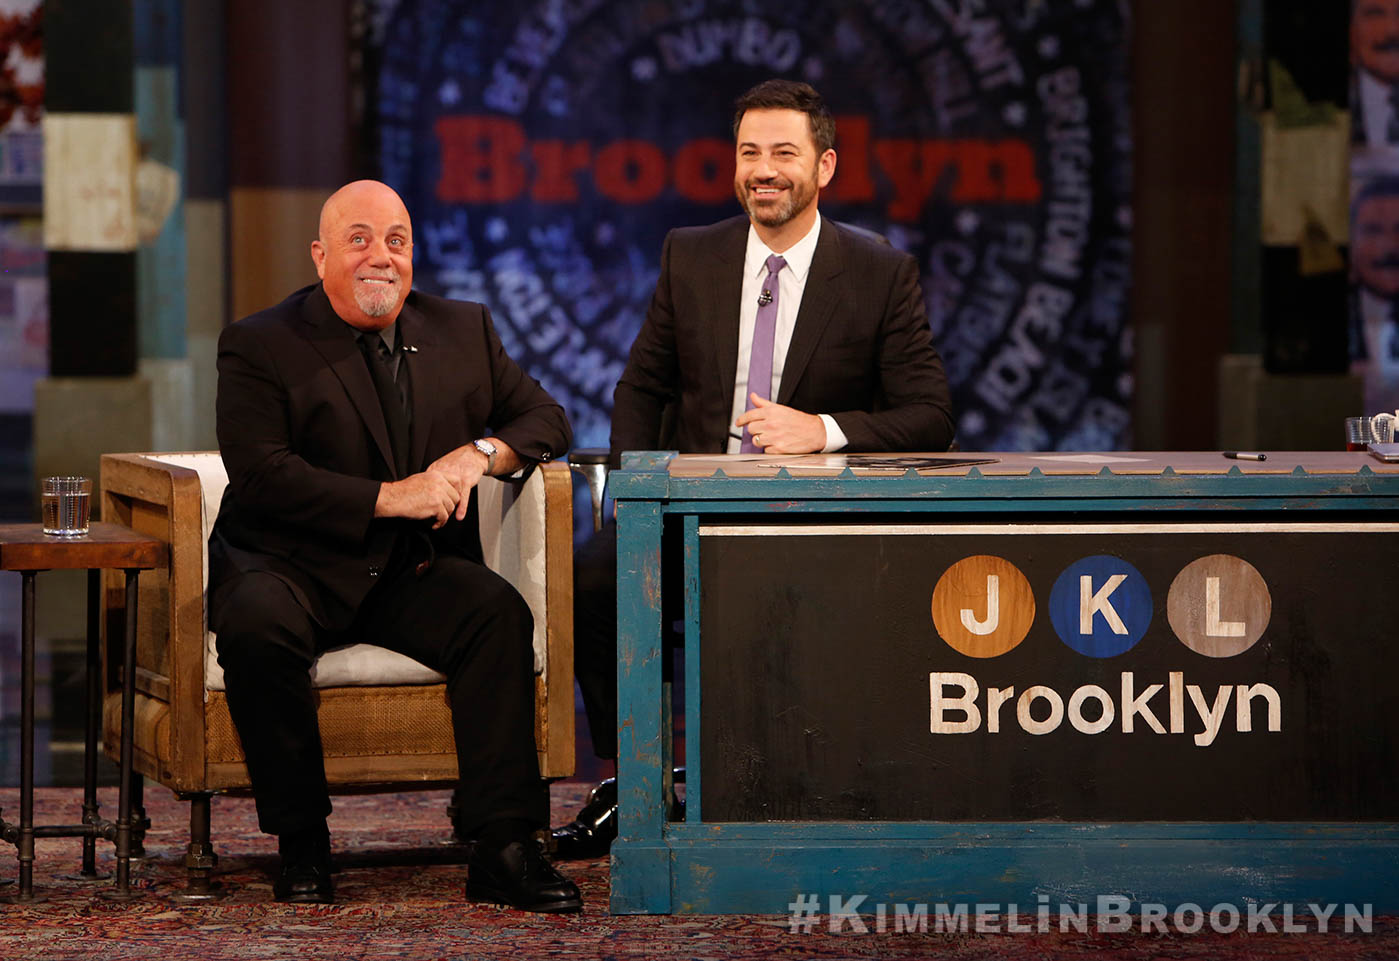 Billy Joel at Jimmy Kimmel Live! October 19, 2017